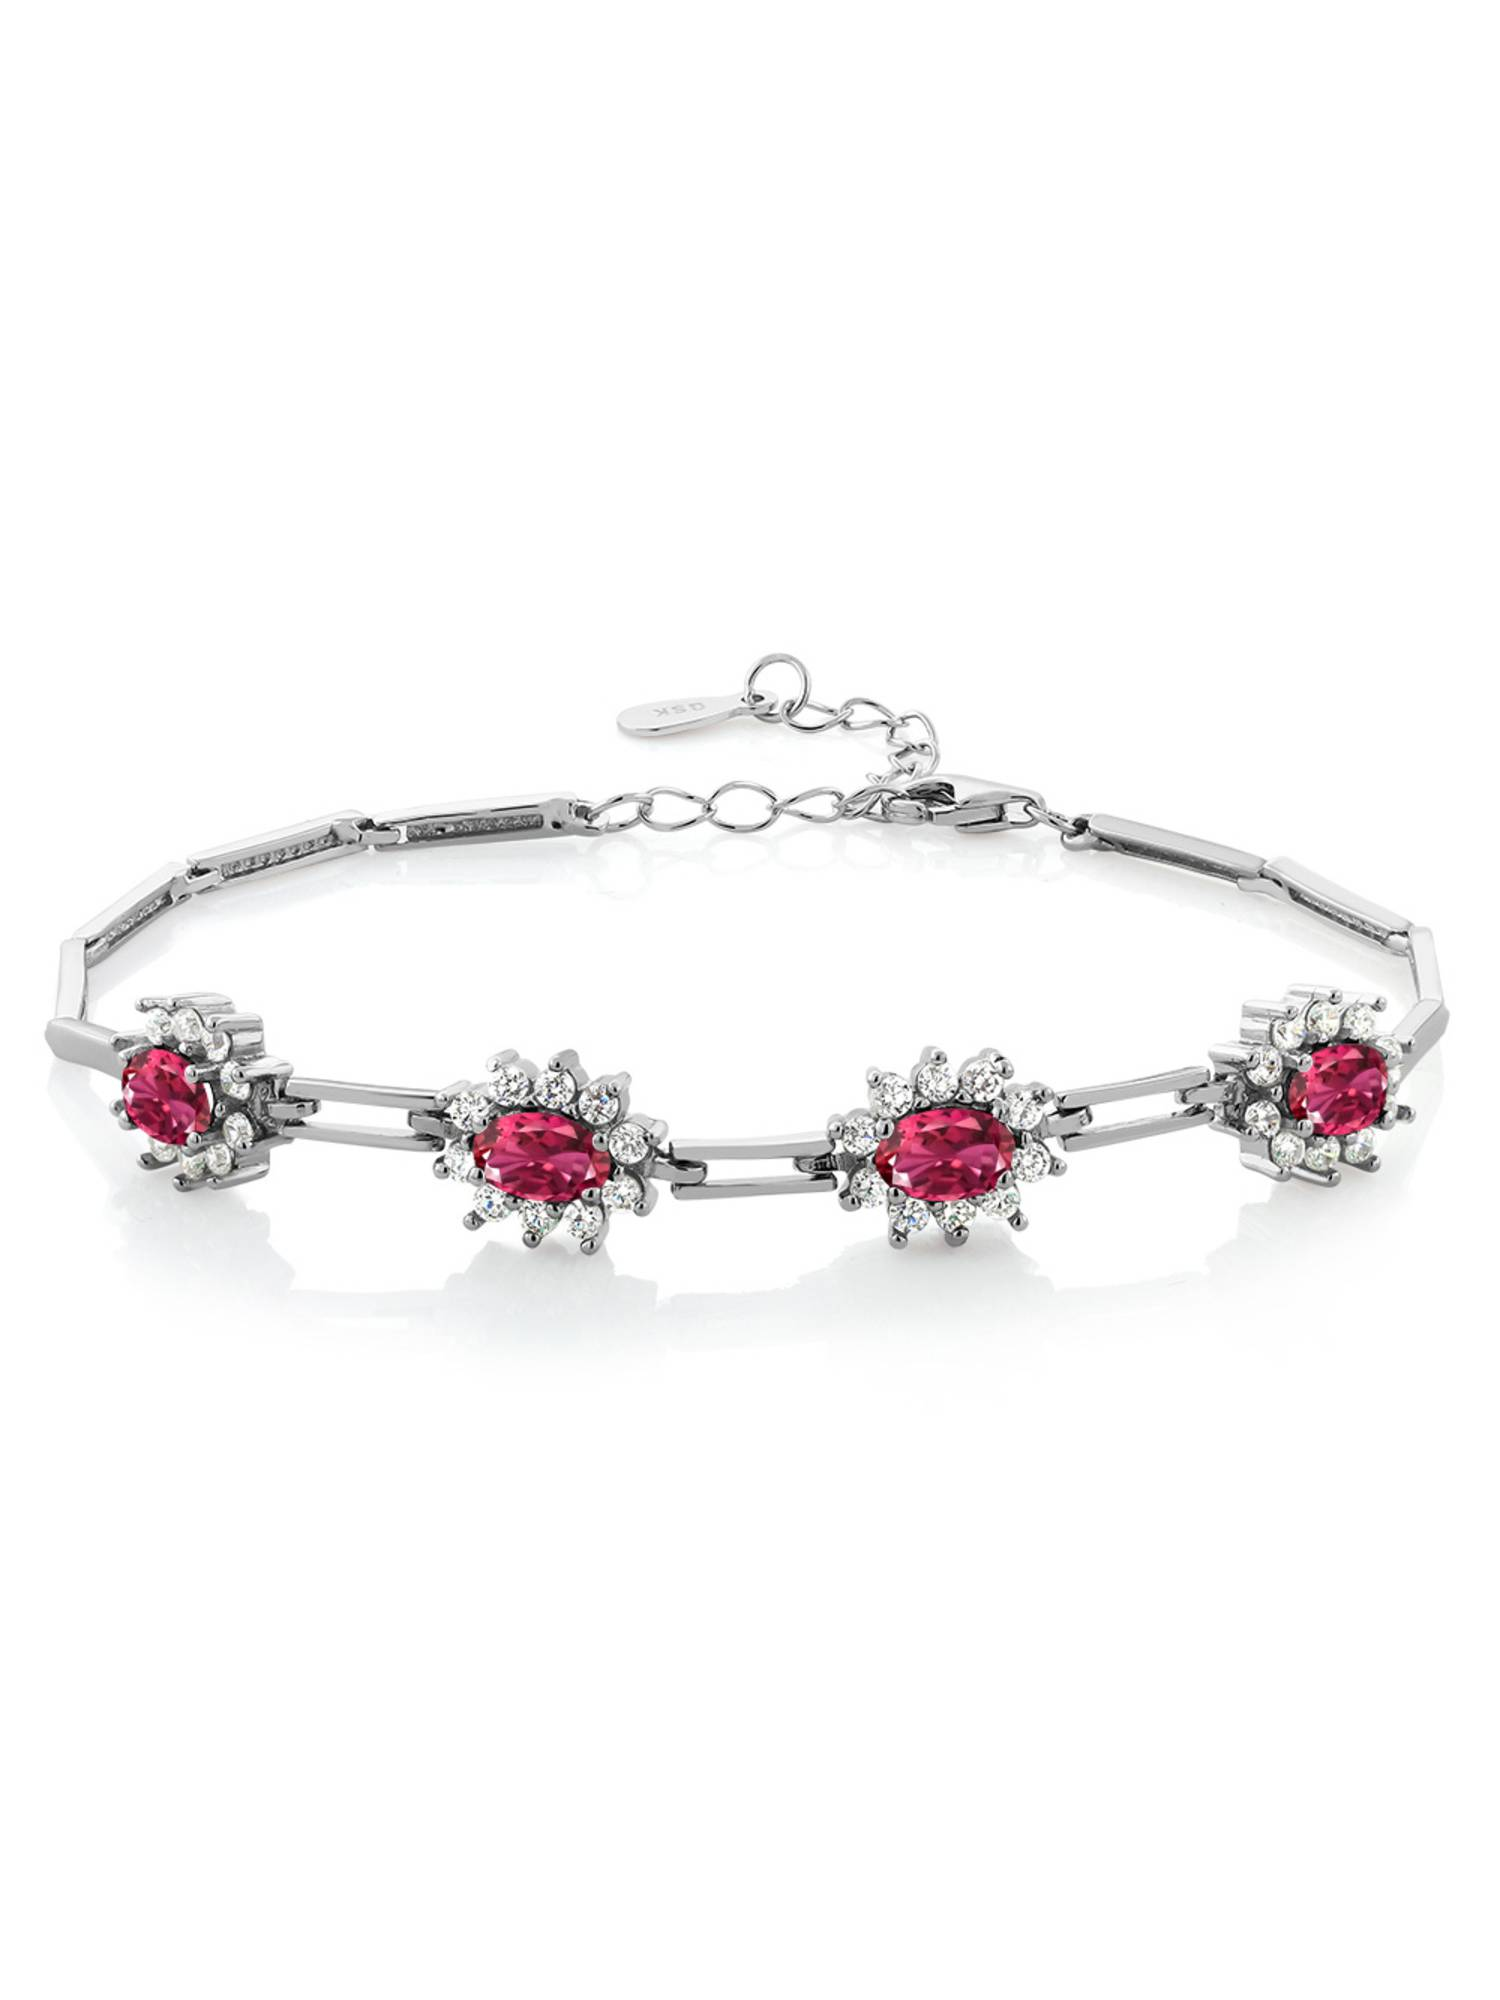 4.00 Ct Oval Pink Tourmaline 925 Sterling Silver Bracelet by